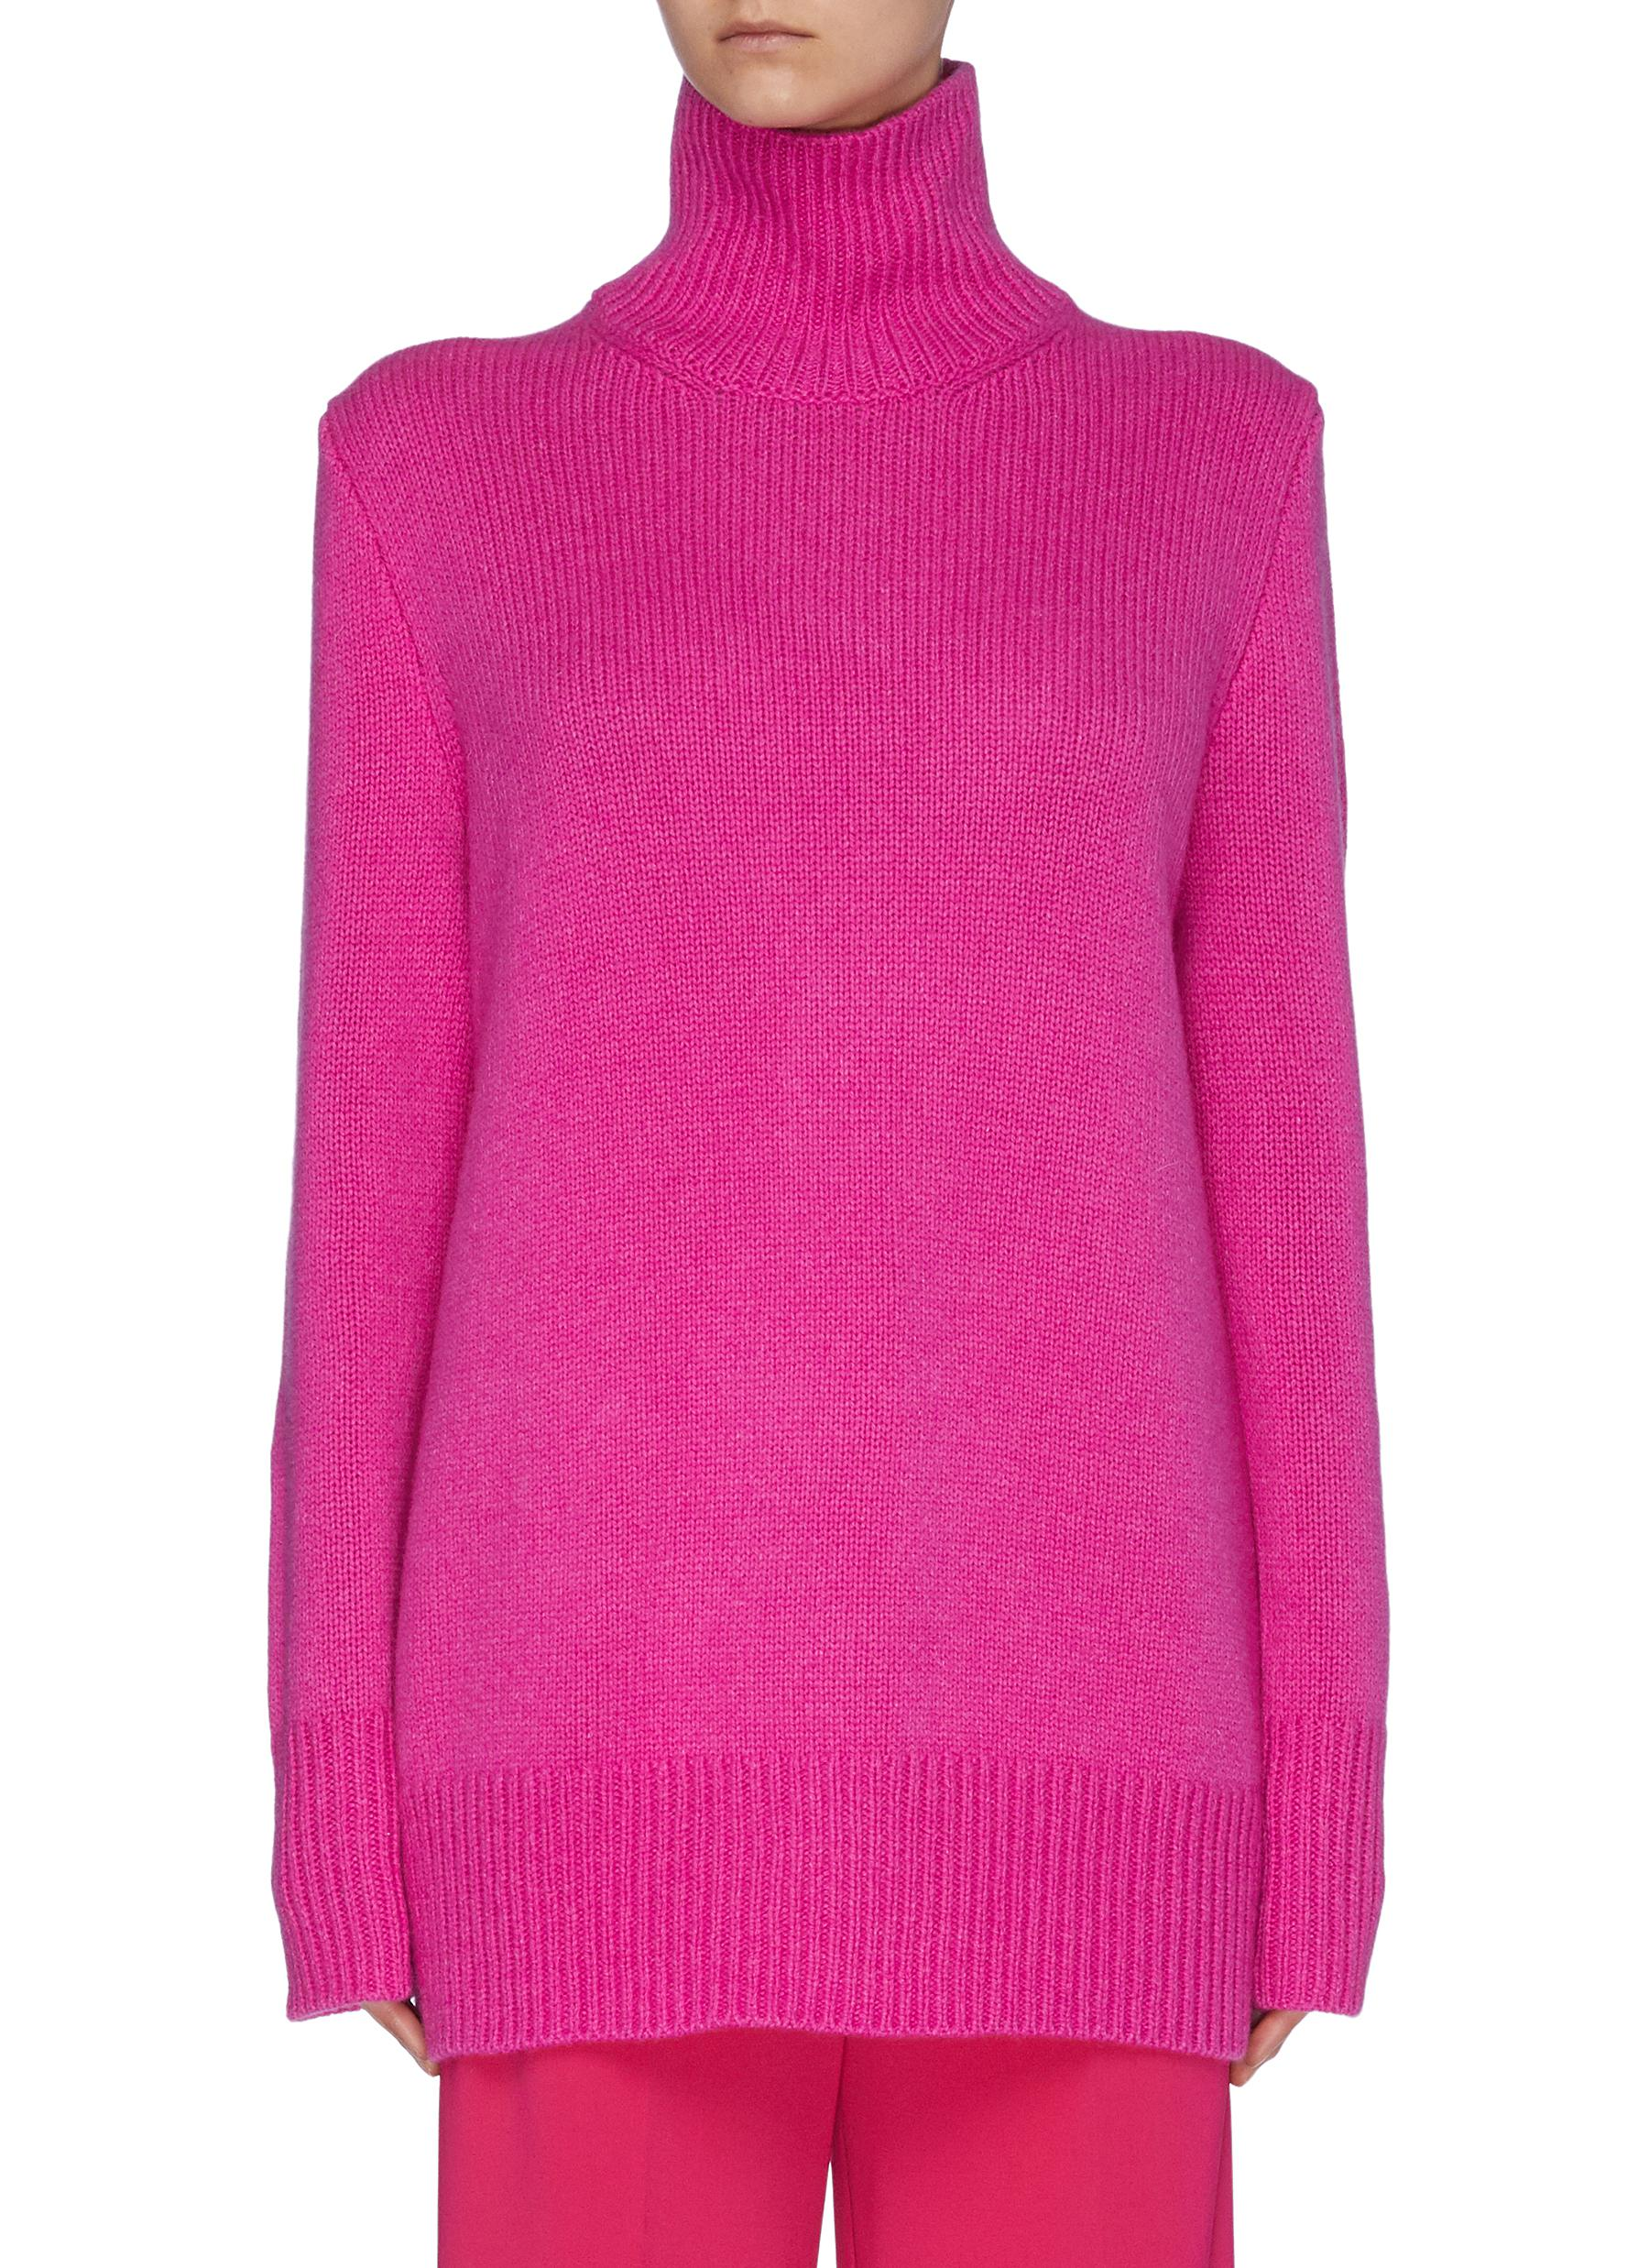 Buy The Row Knitwear 'Sadel' cashmere turtleneck sweater